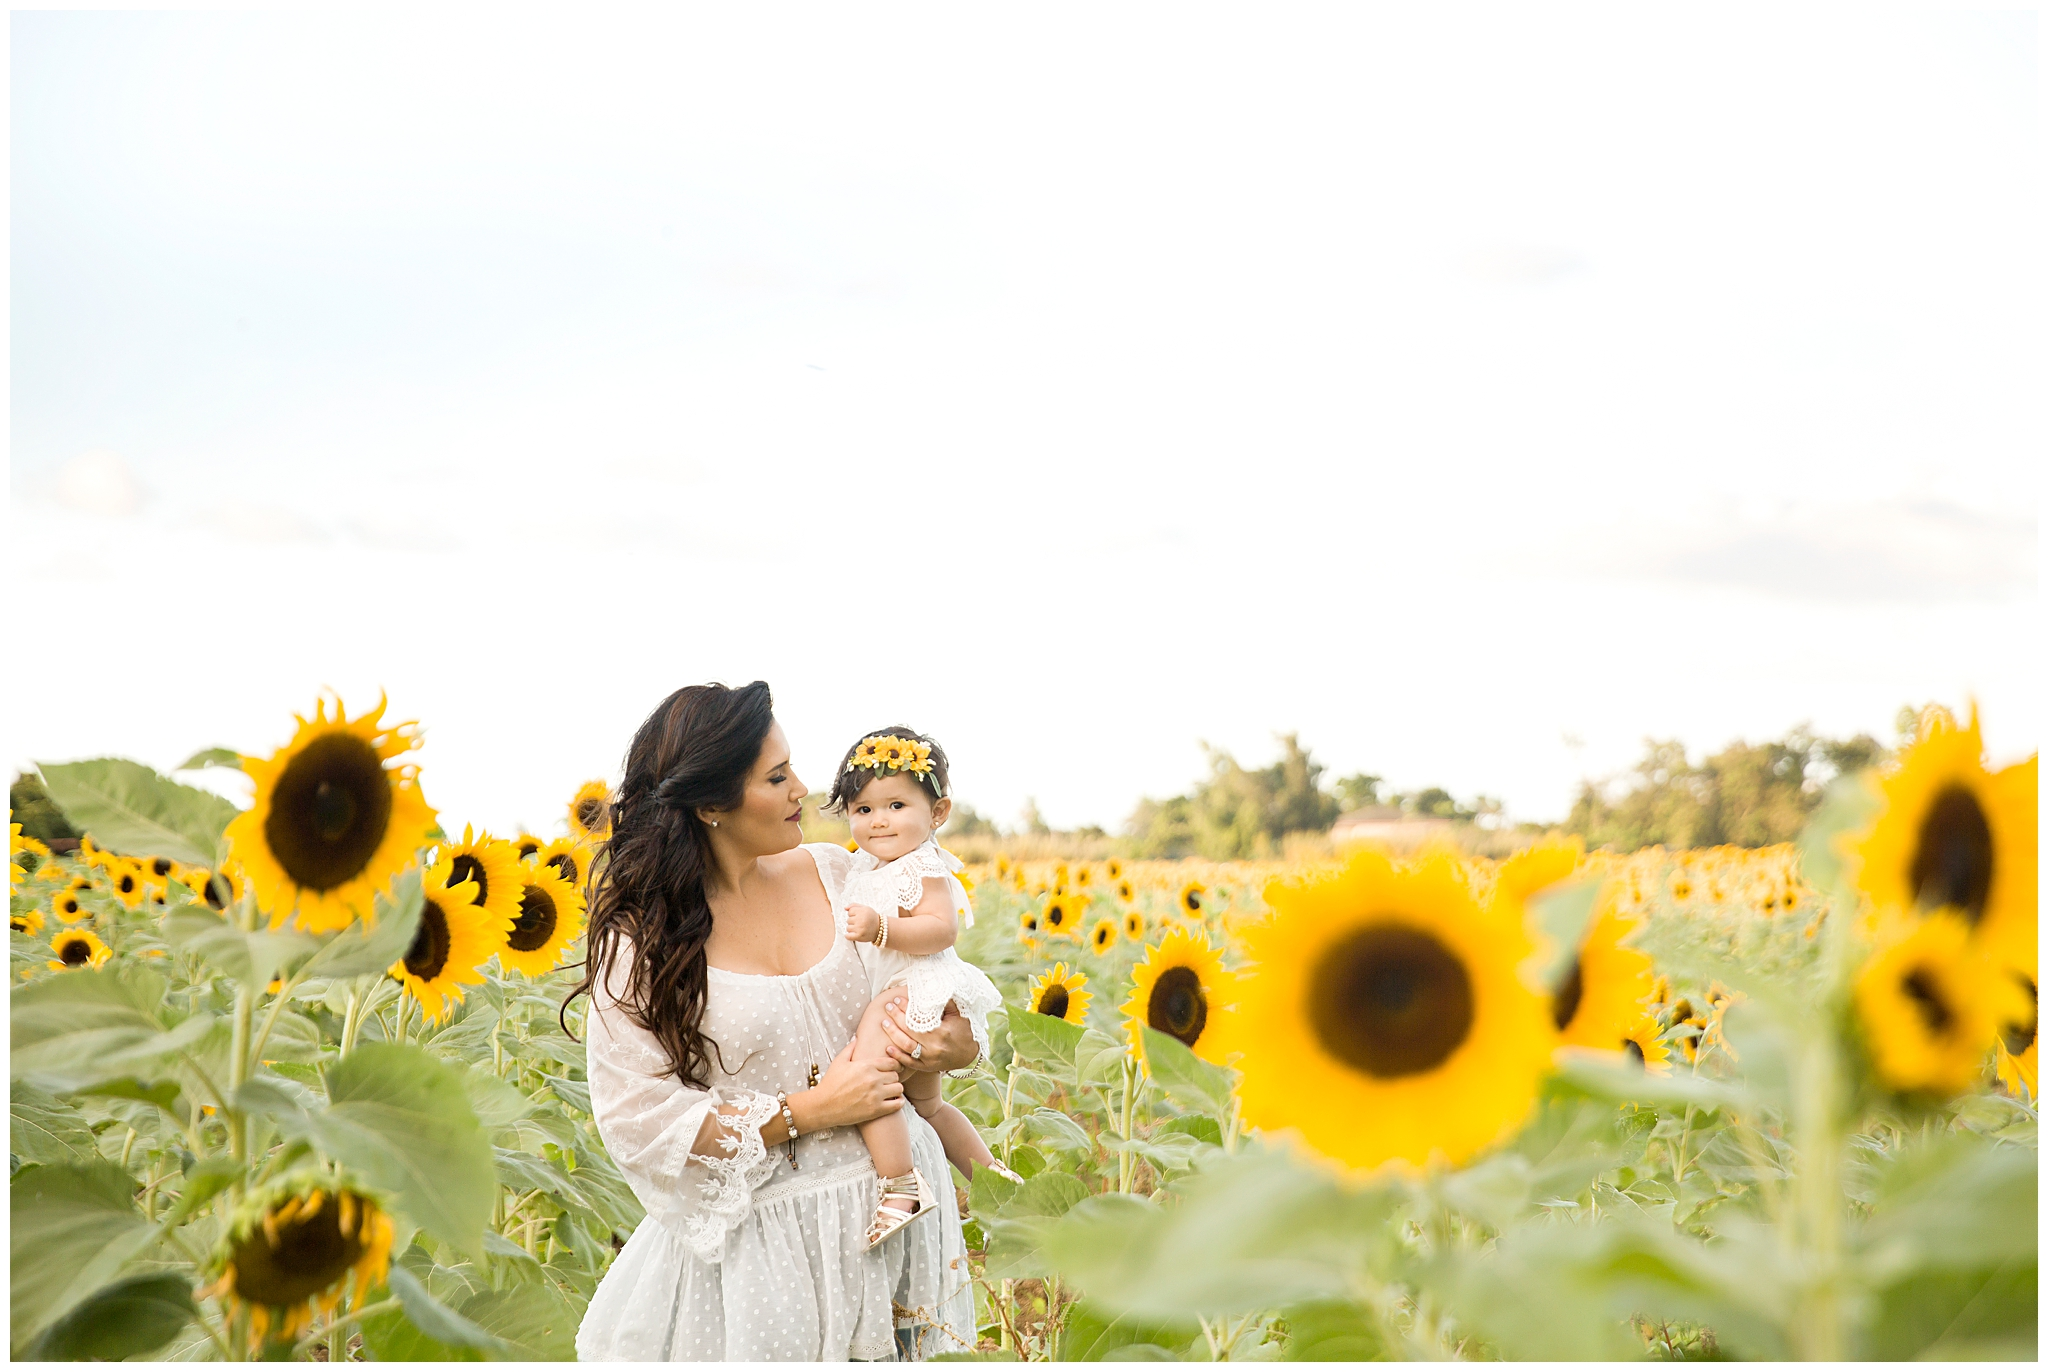 Sunflower field in Miami with Best Family Photographer